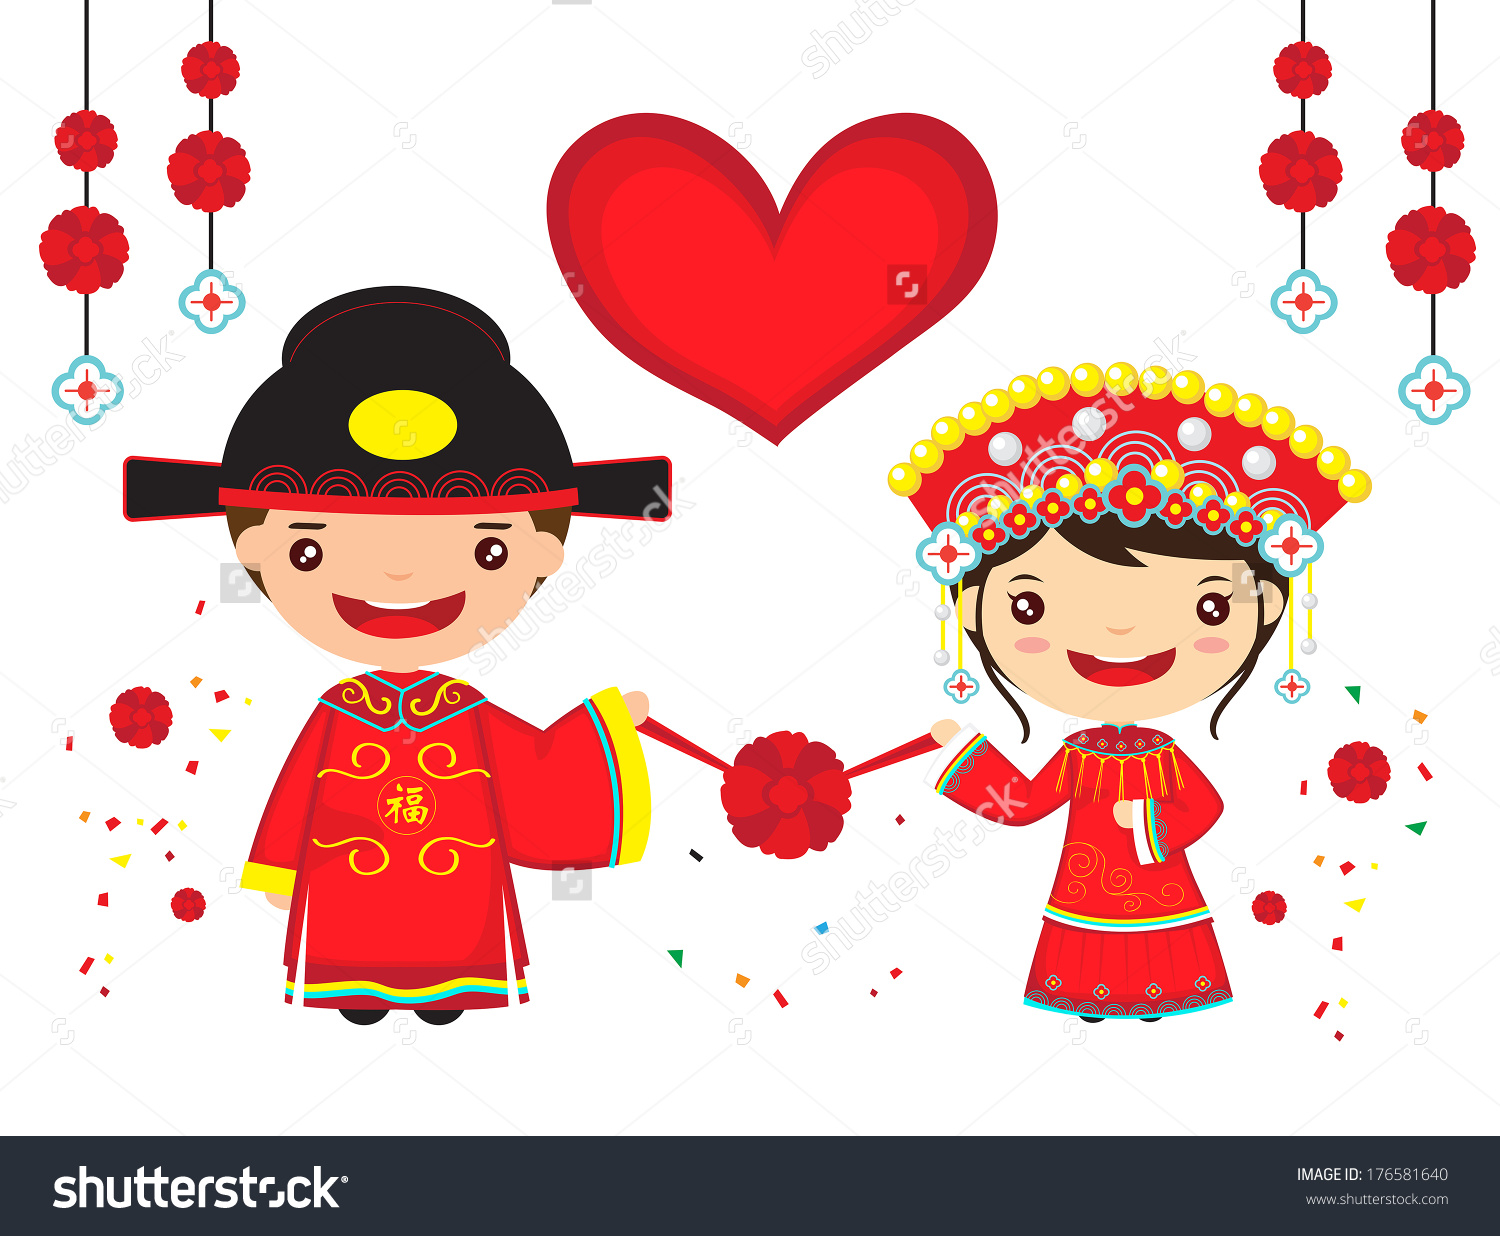 Chinese Couple Traditional Wedding Costume Cartoon Stock Vector.